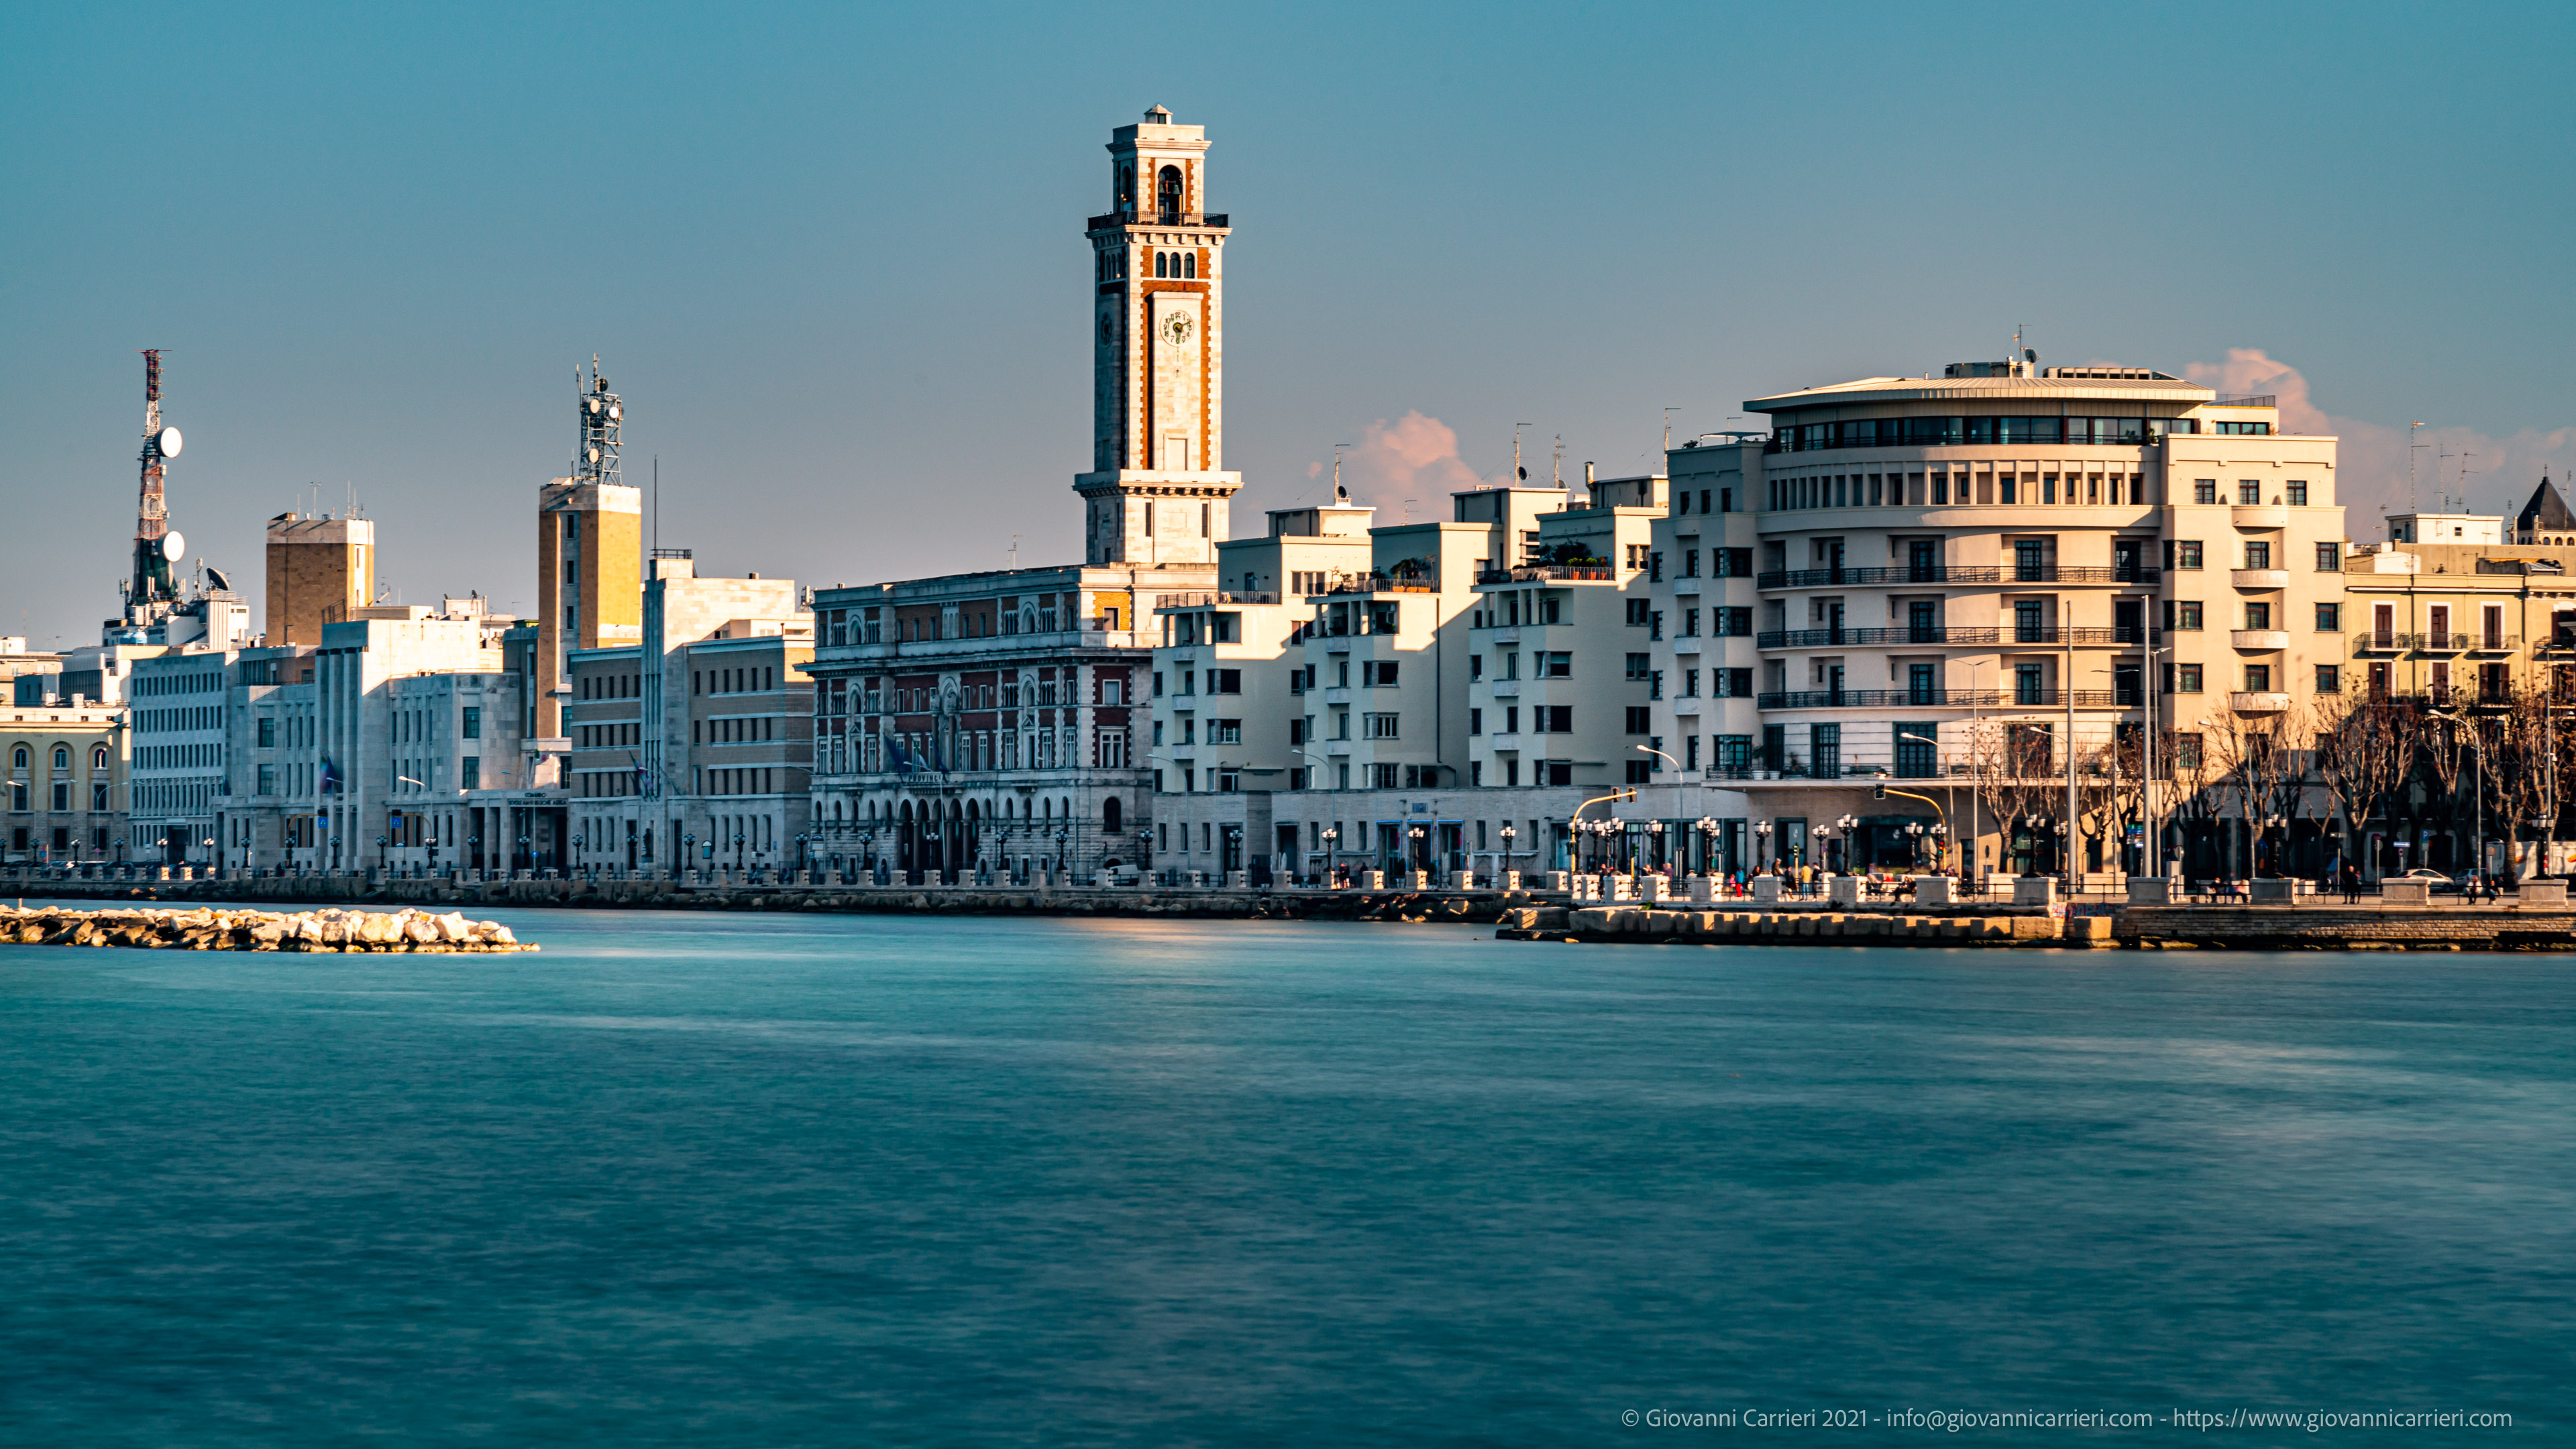 The waterfront of Bari, the spring